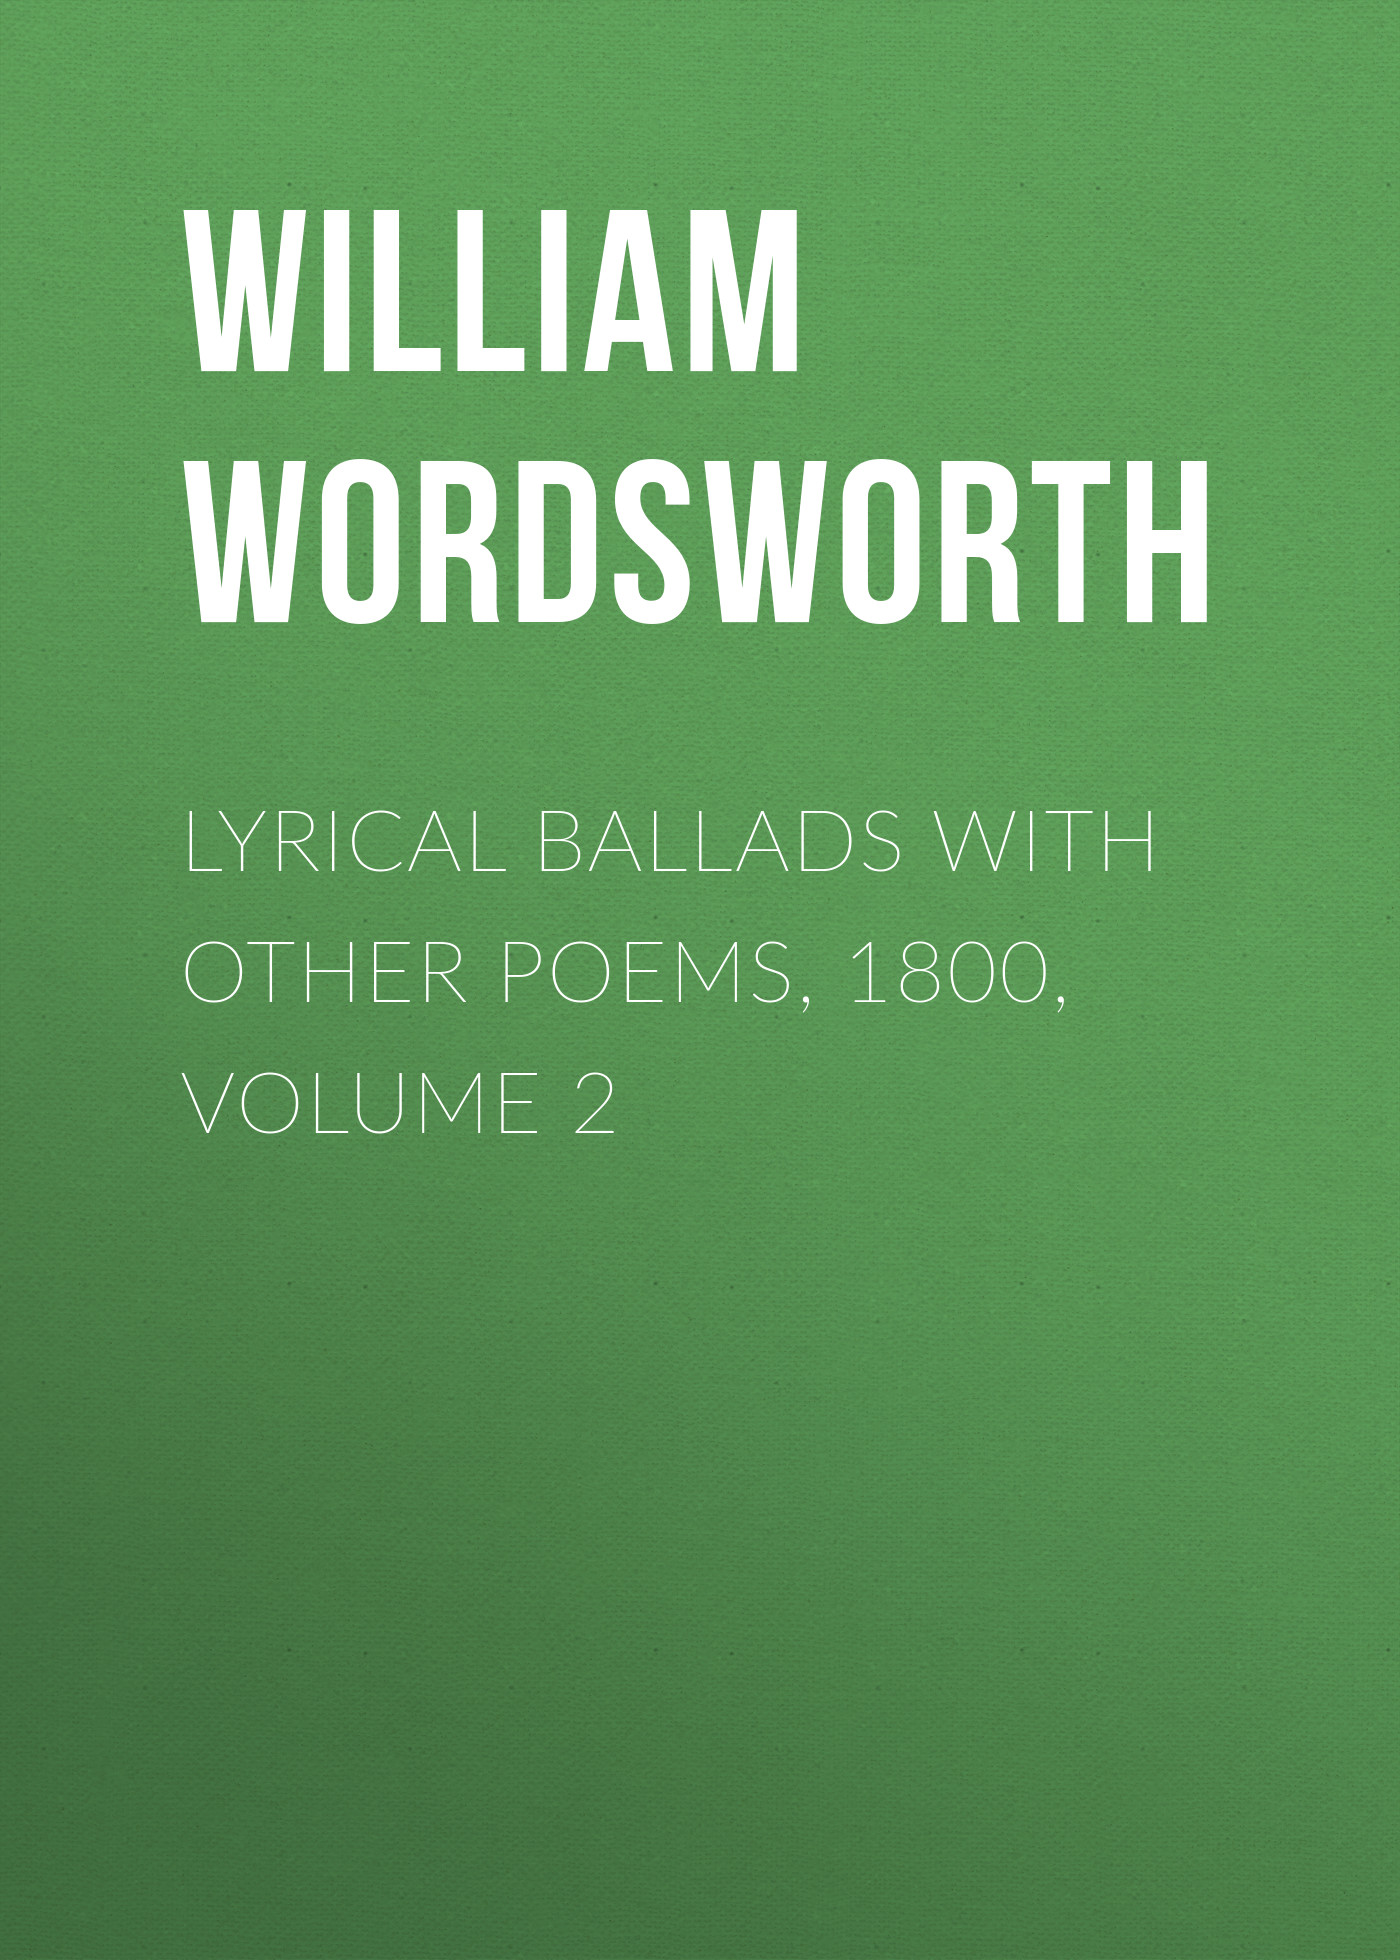 William Wordsworth Lyrical Ballads with Other Poems, 1800, Volume 2 other 2 swwb00116